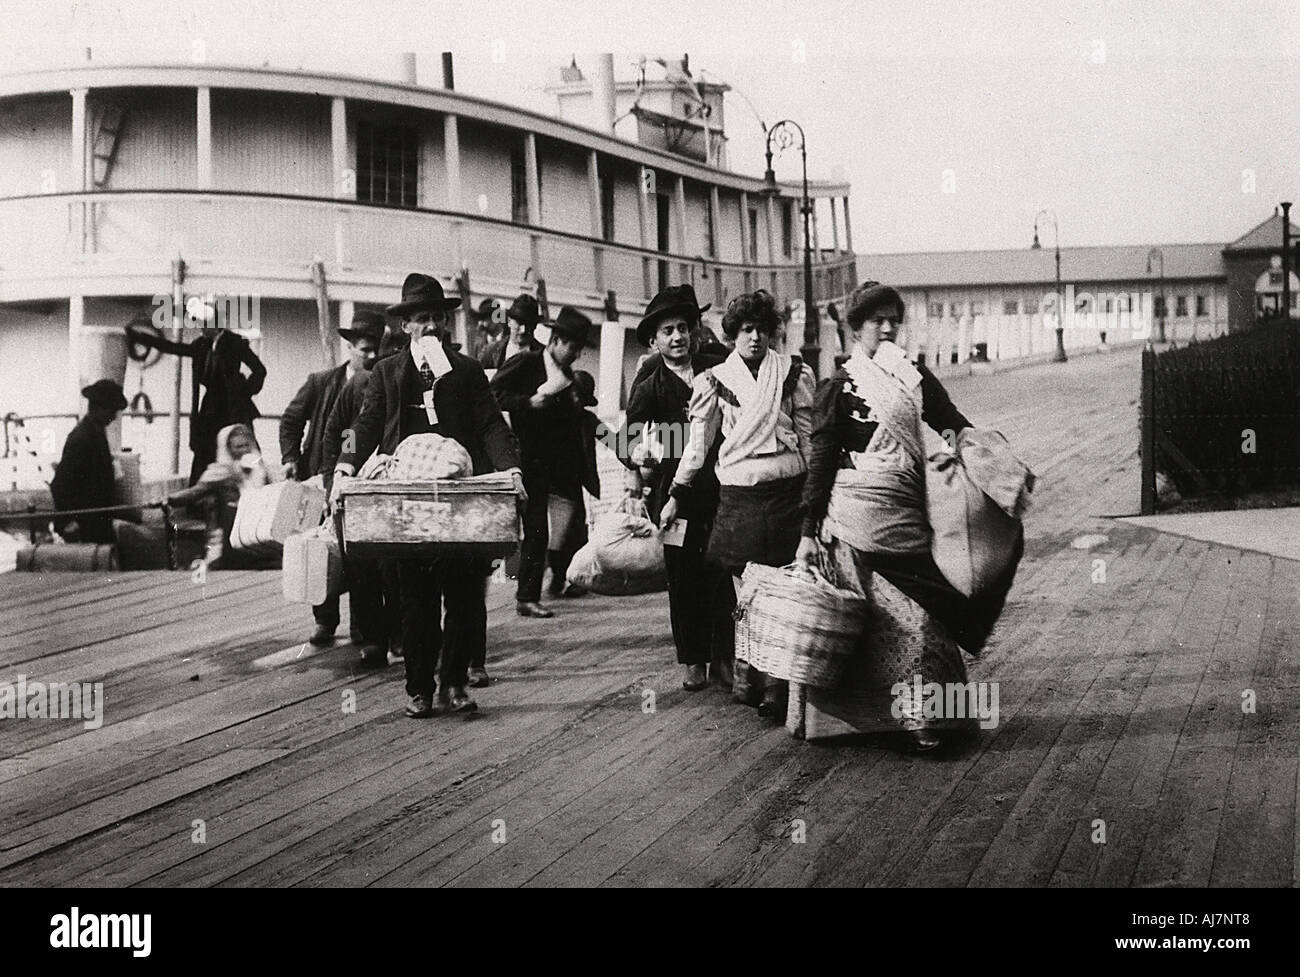 Immigrants to the USA landing at Ellis Island, New York, c1900. Artist: Unknown Stock Photo